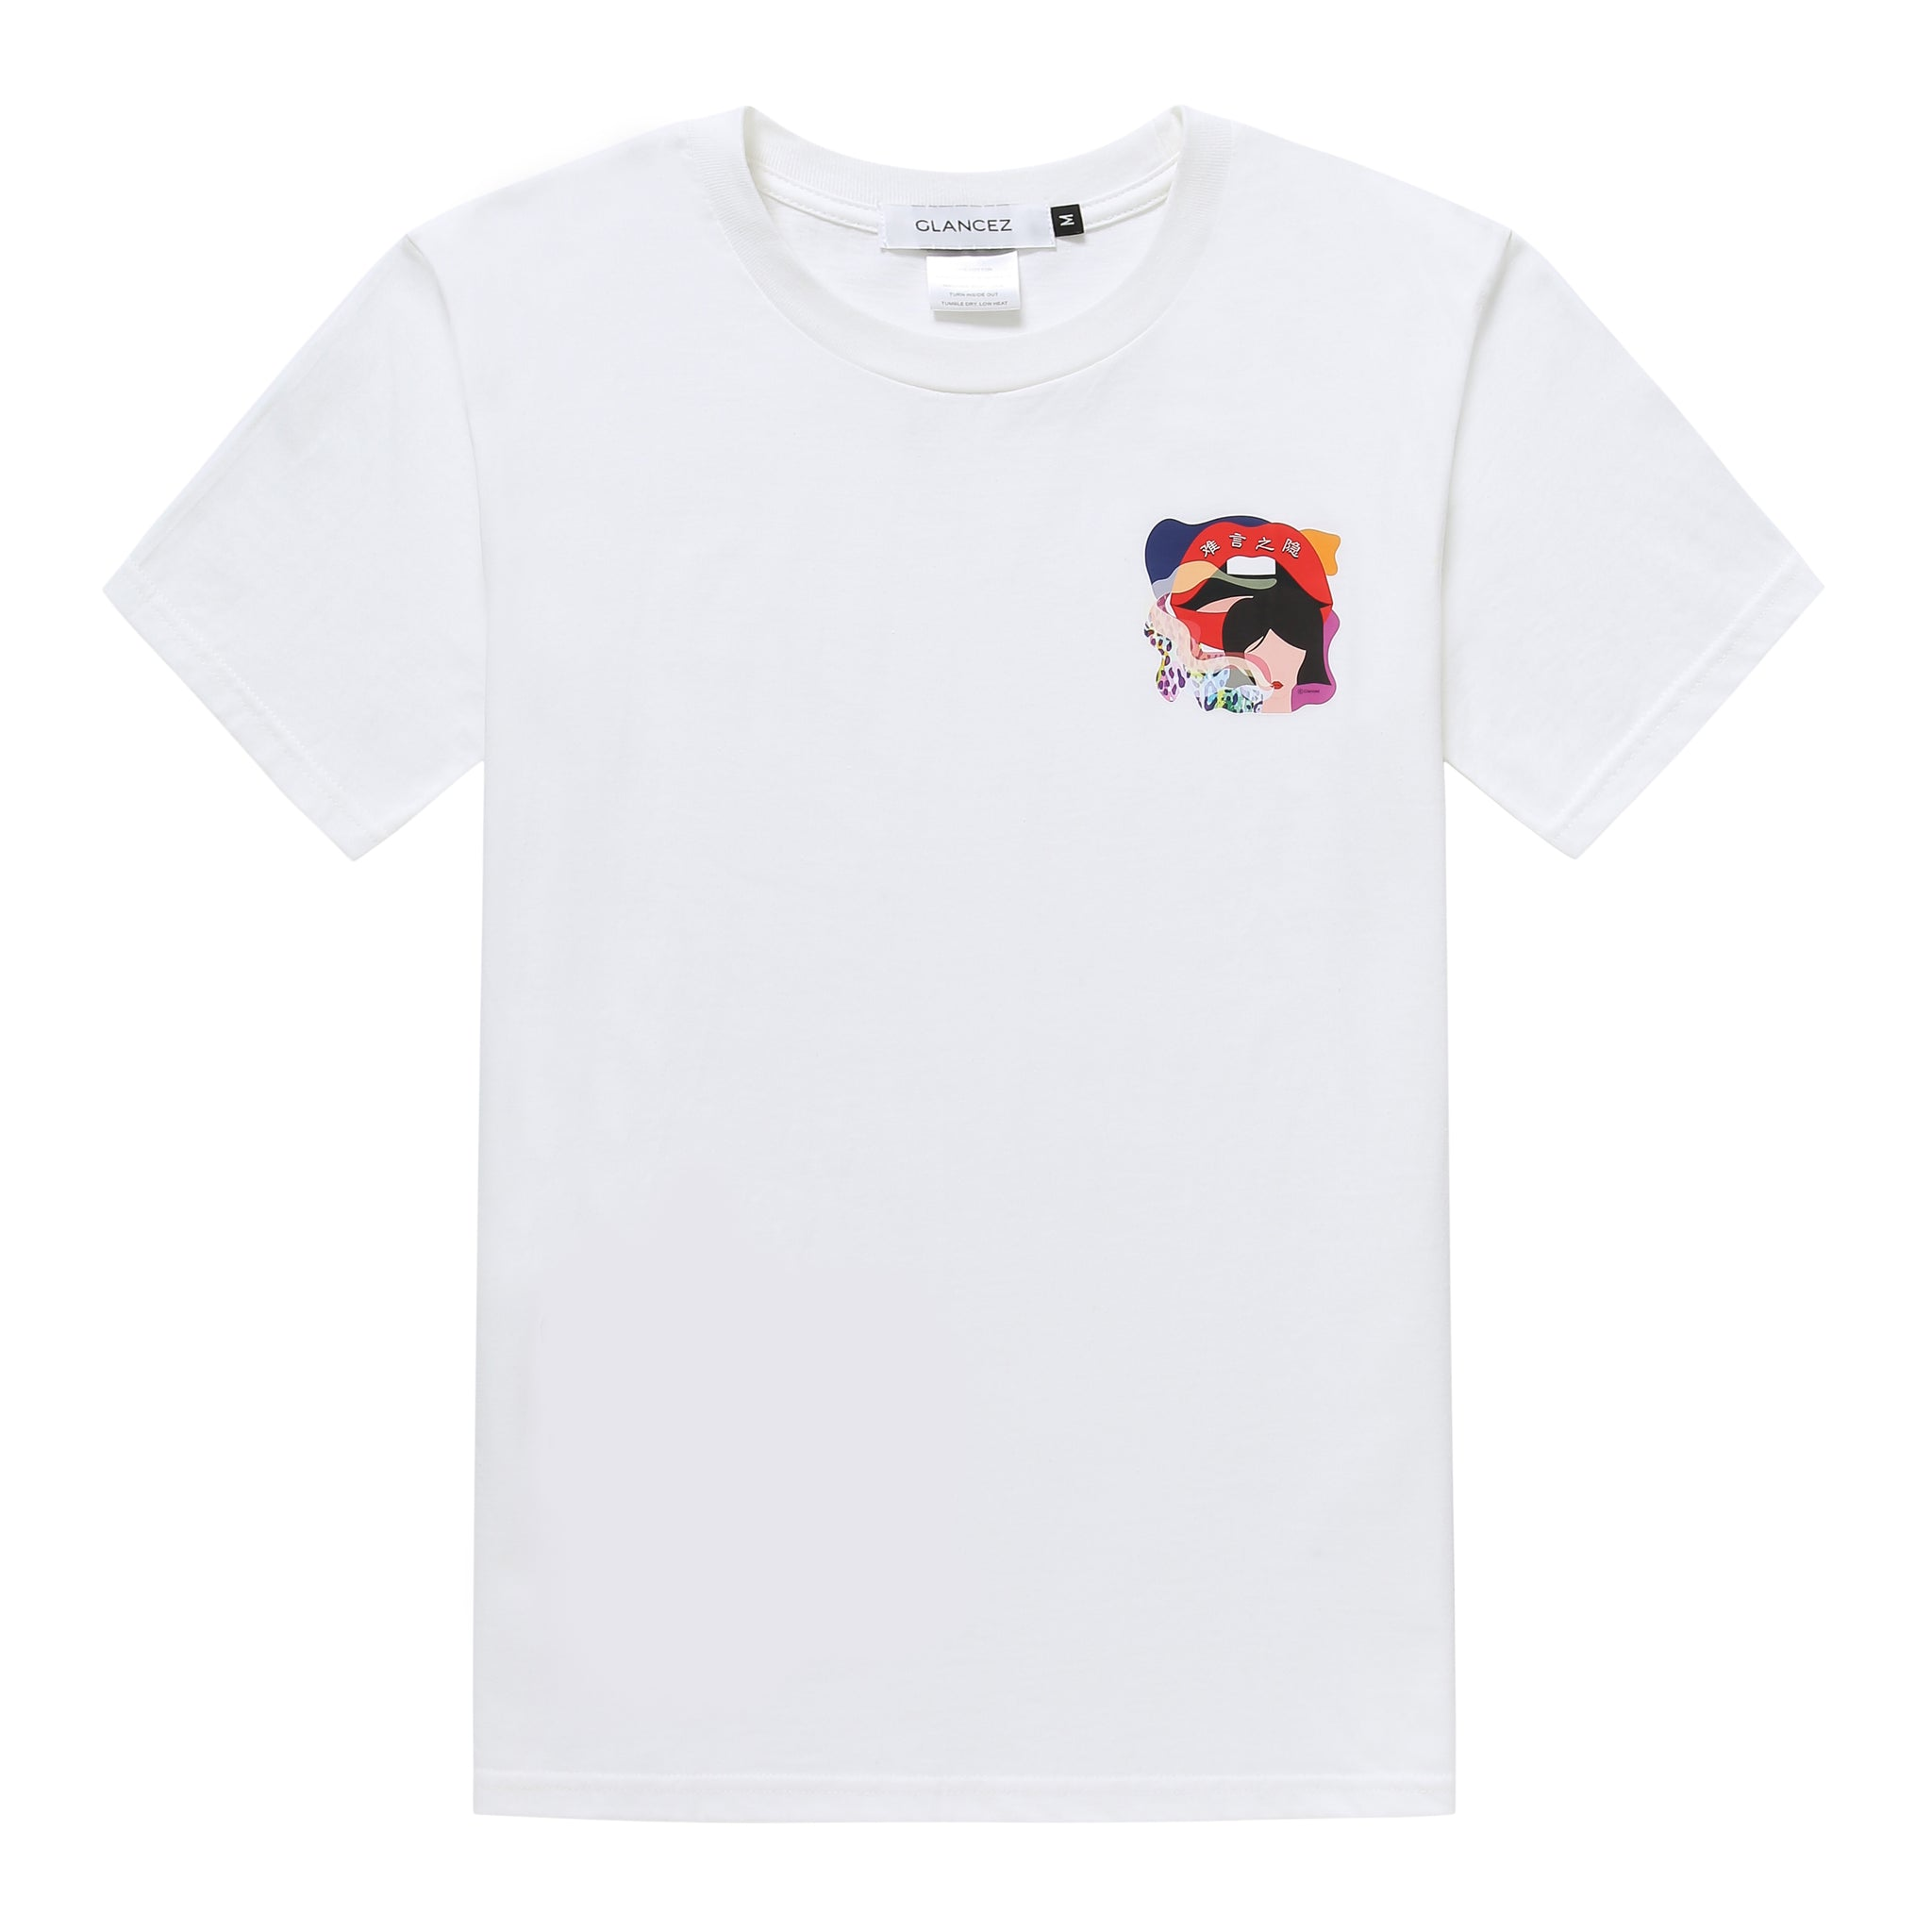 Original Hard To Say Graphic T-shirt In White